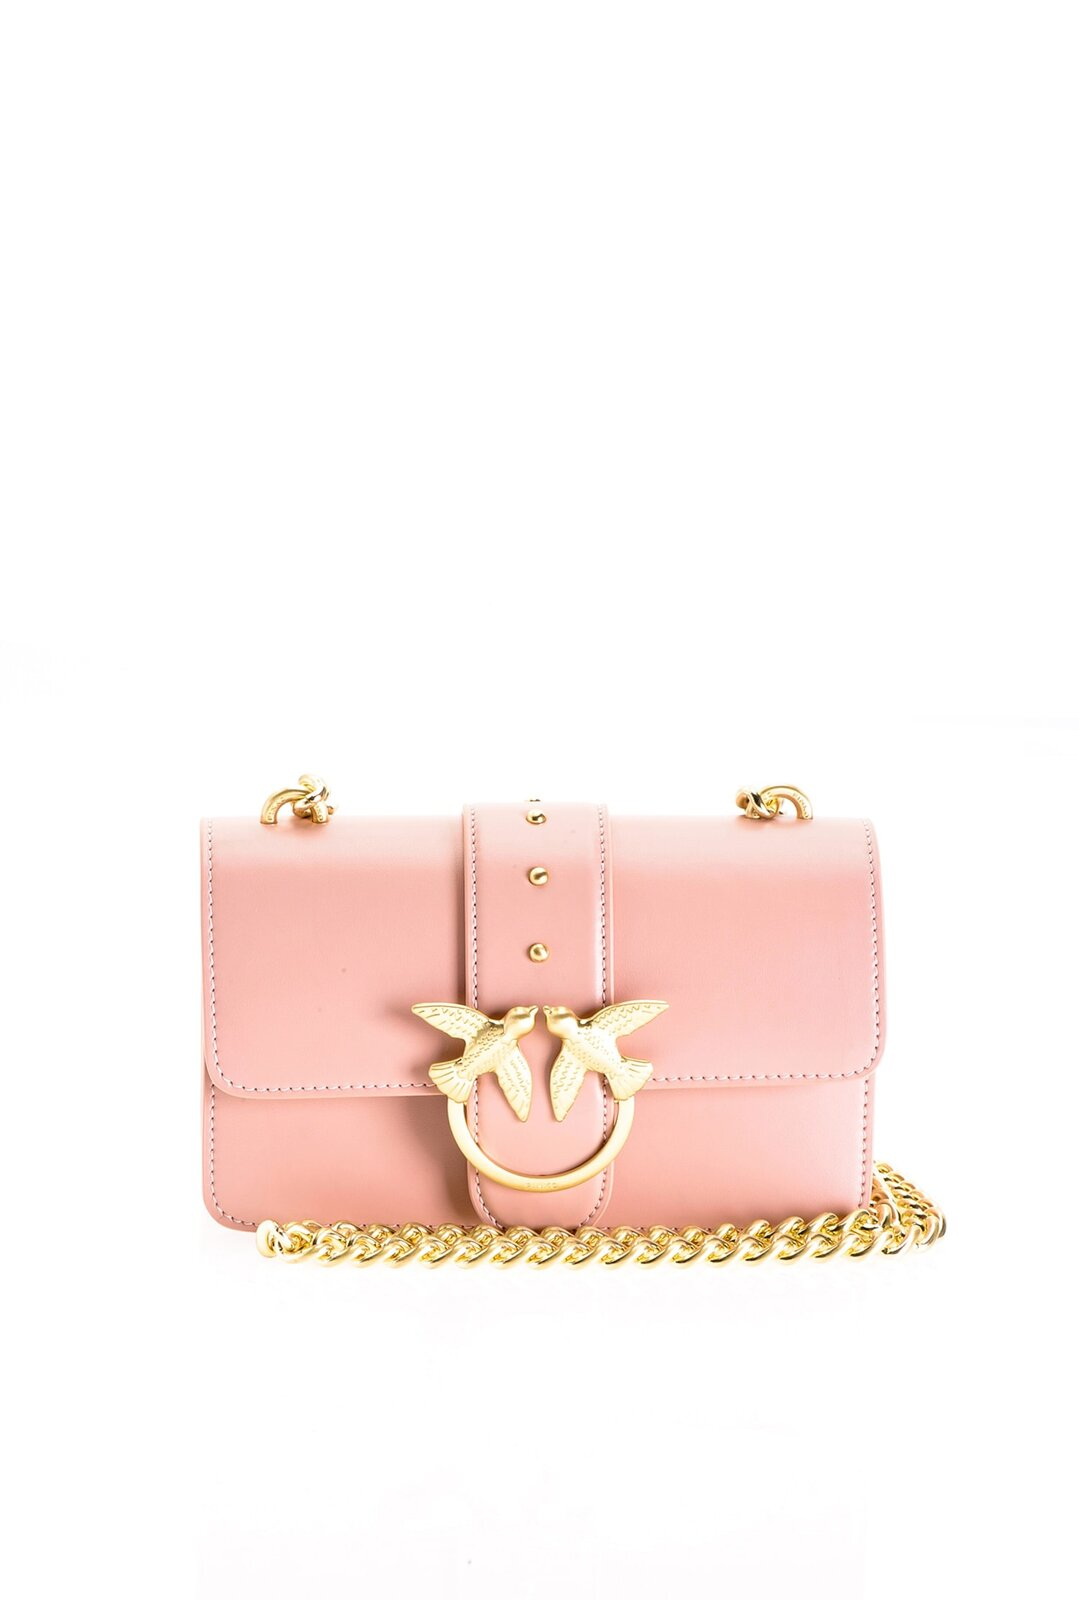 Mini Love Bag Simply In Pelle - Pinko